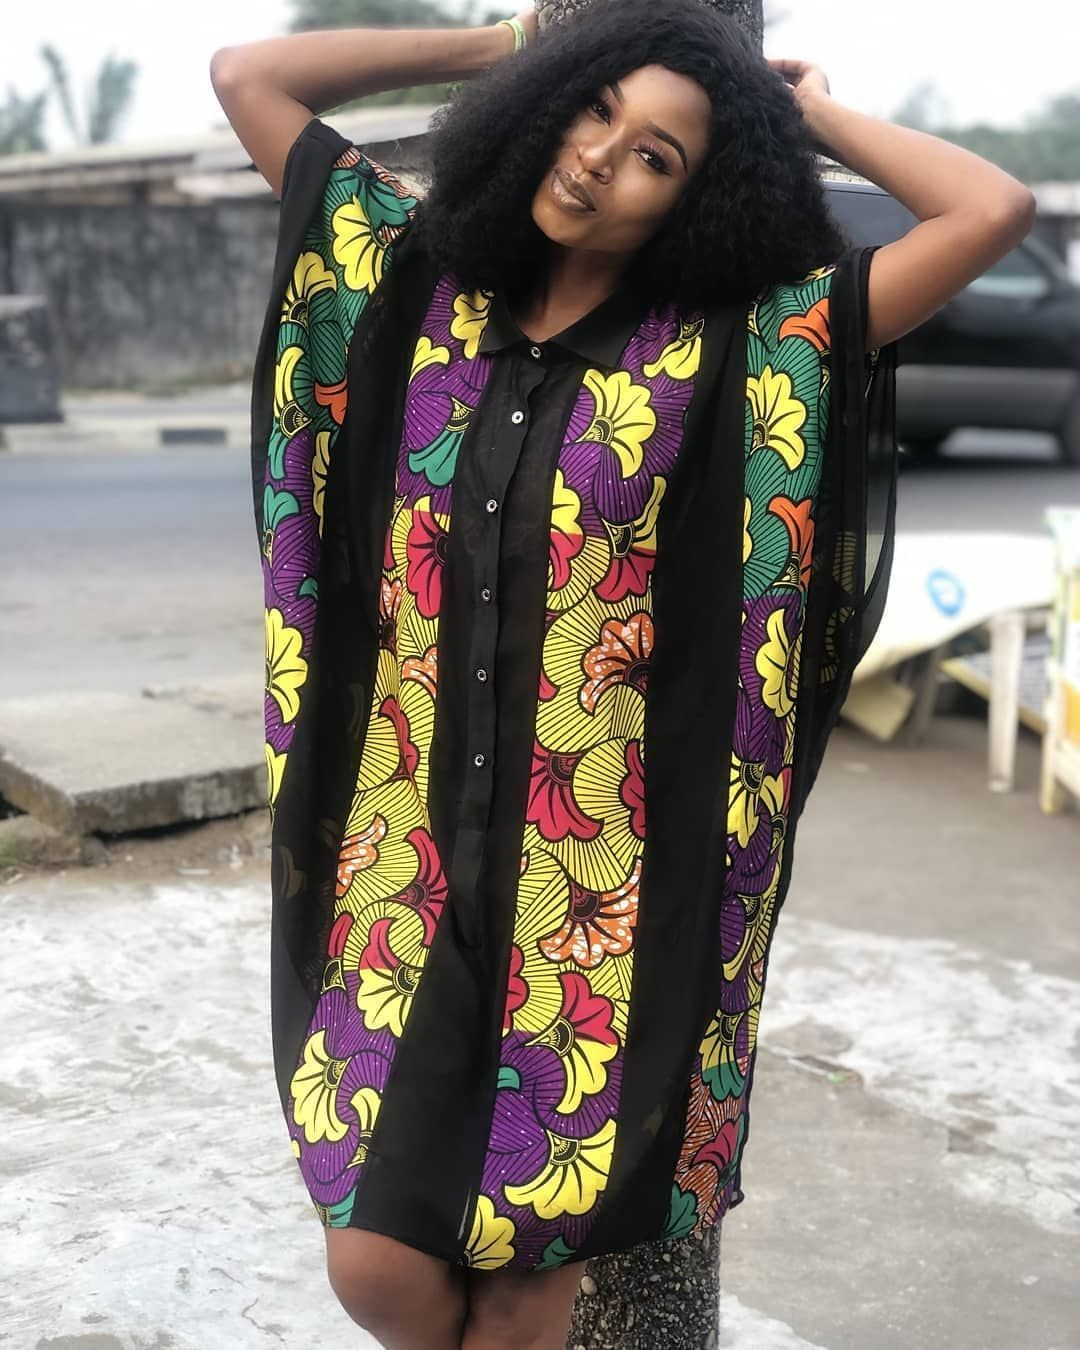 100 Latest Trendy And Cassy Ankara Long Gowns For Beautiful African Ladies In 2020 In 2020 African Fashion Ankara Ankara Dress Designs African Fashion